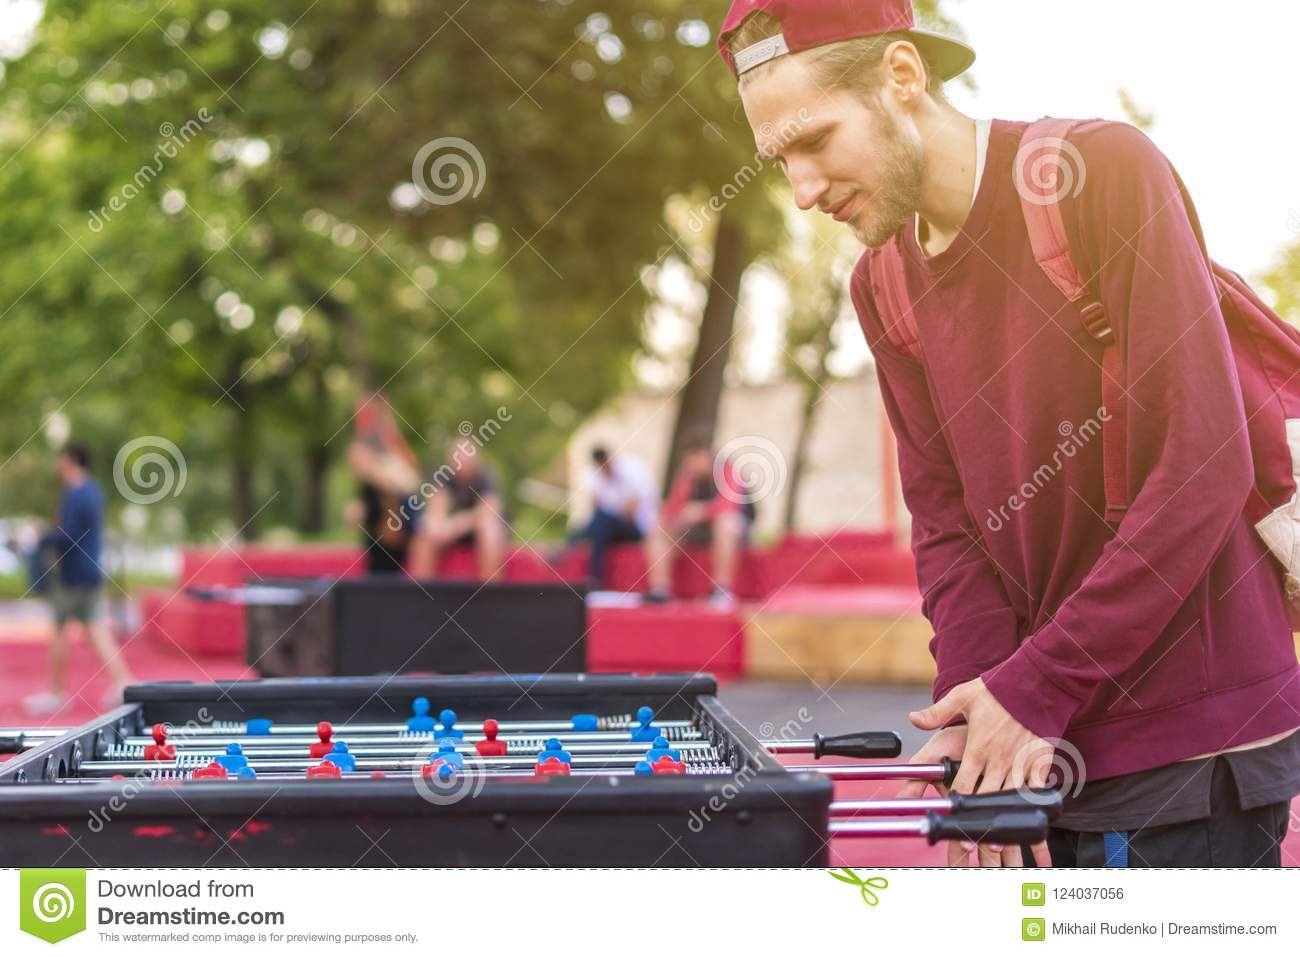 Smiling young man playing table soccer foosball outside having fun with friends d